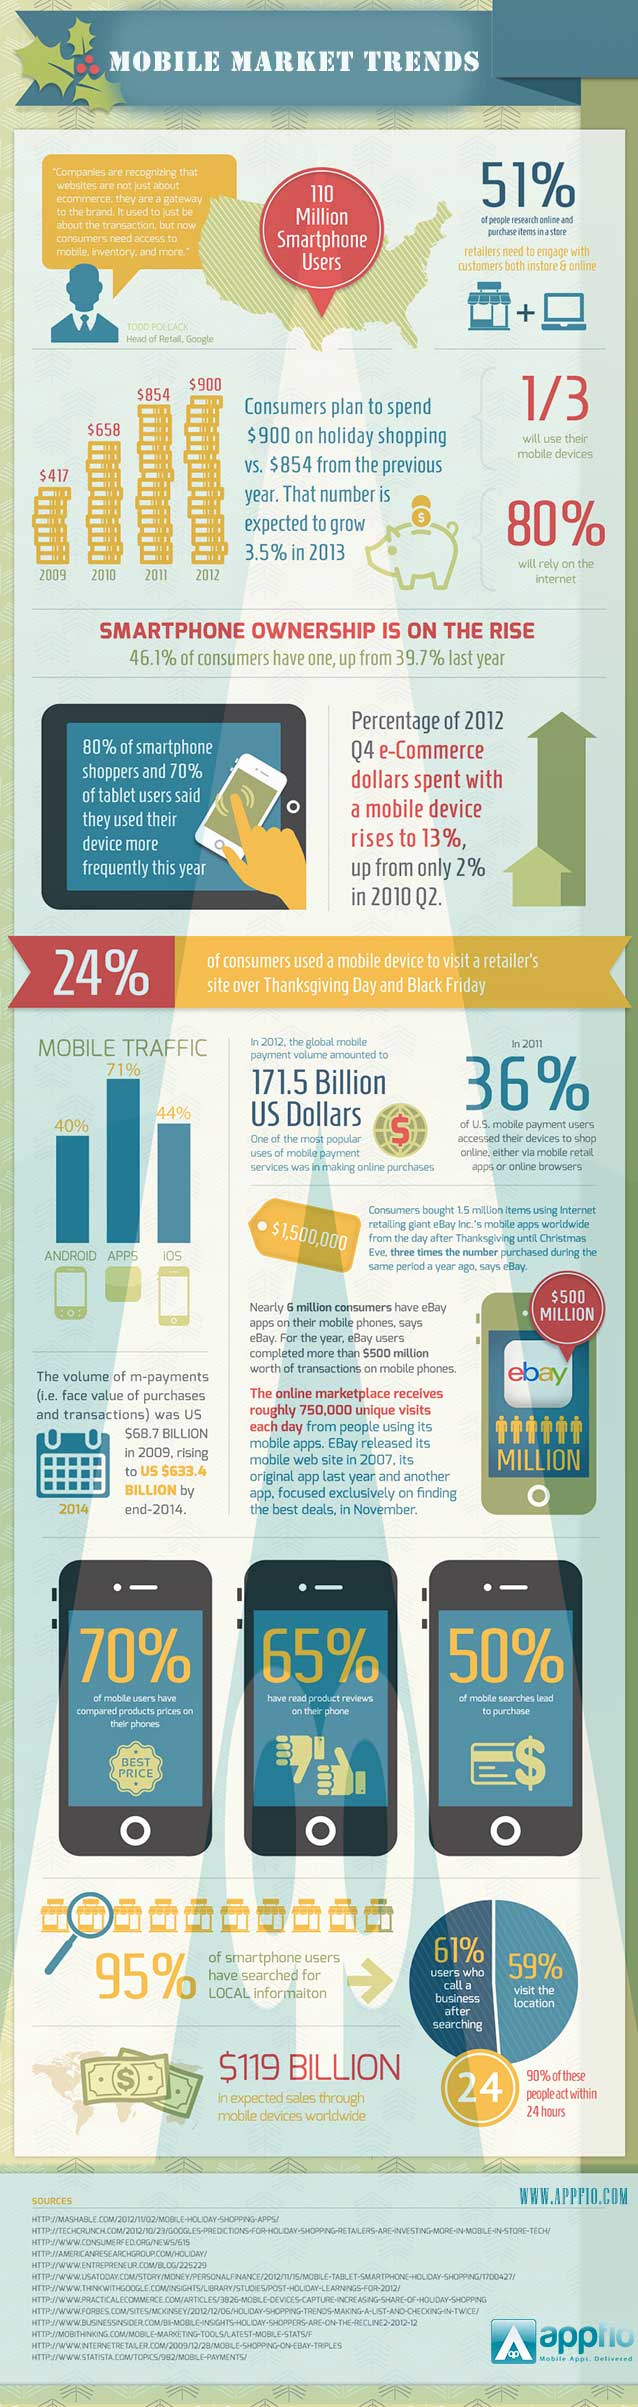 Mobile Market Trends Infographic marketing